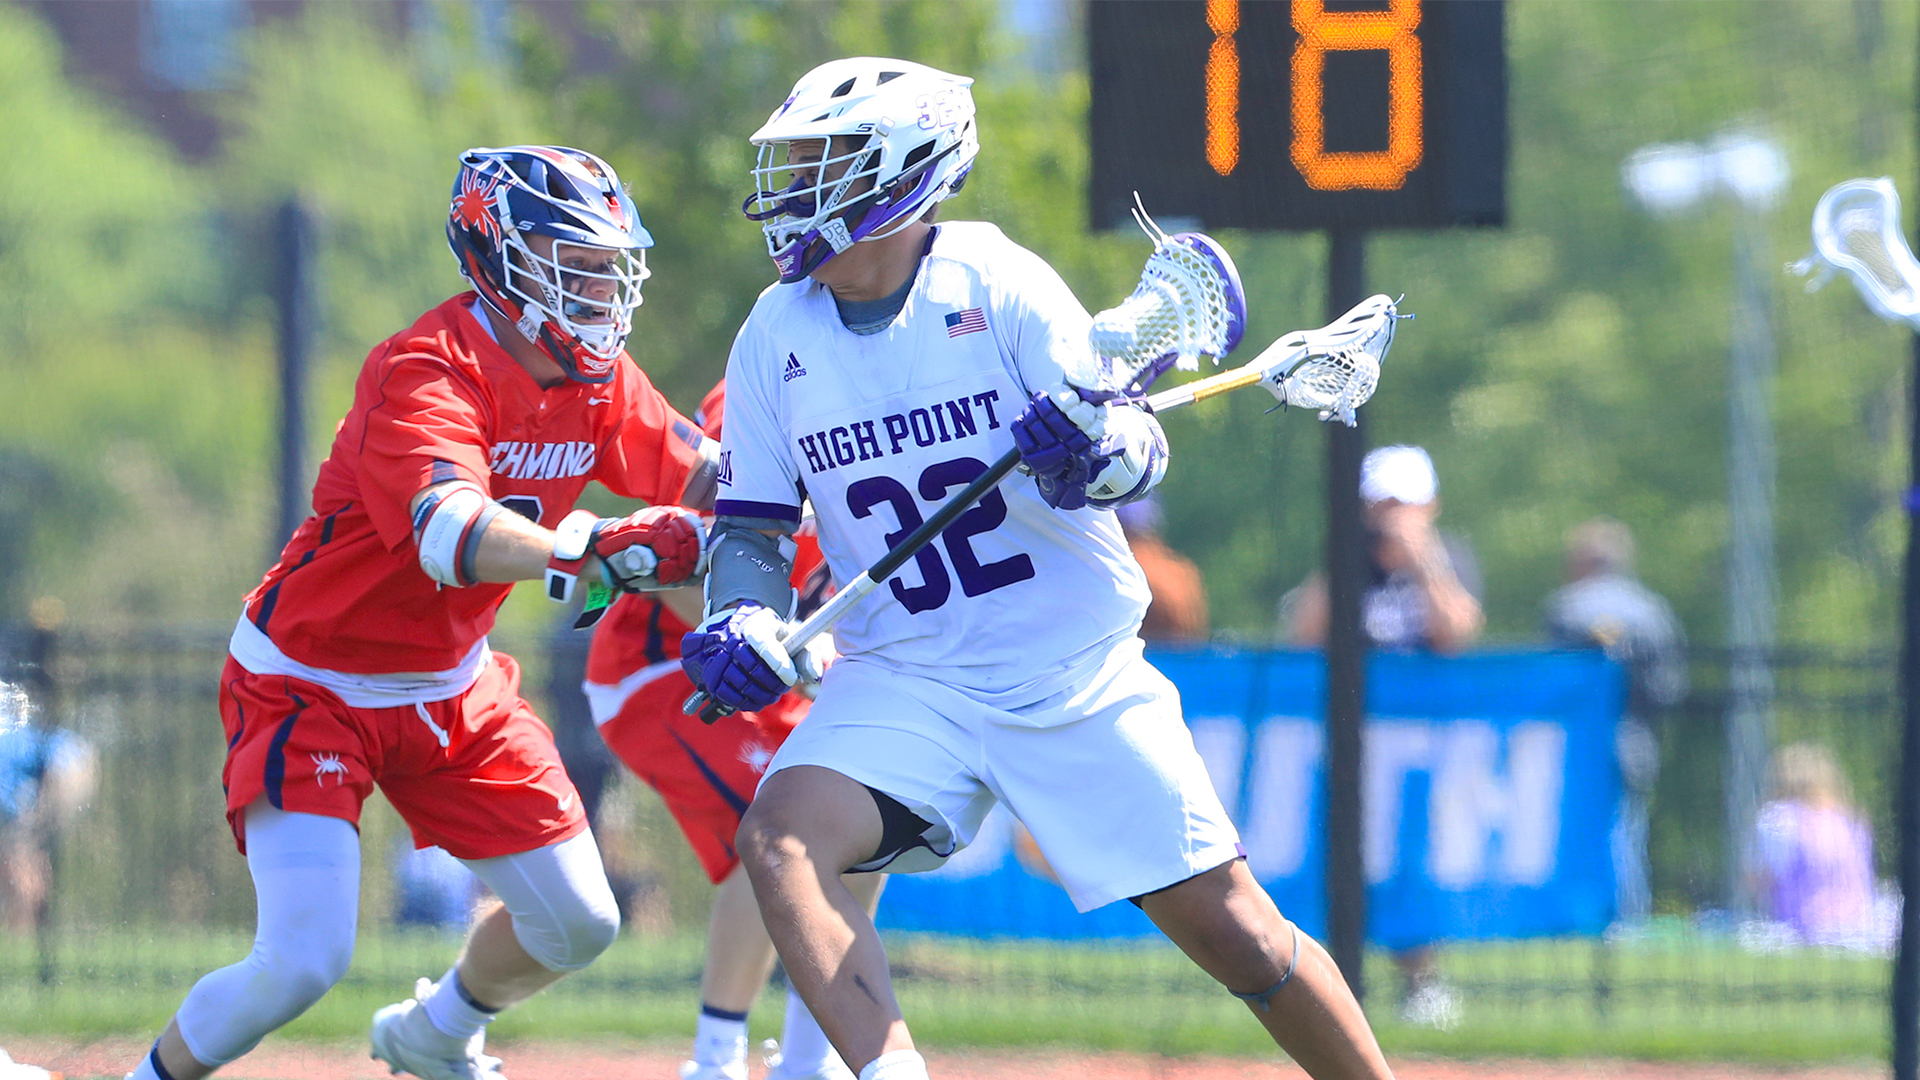 High Point Lacrosse >> Asher Nolting 2019 Men S Lacrosse High Point